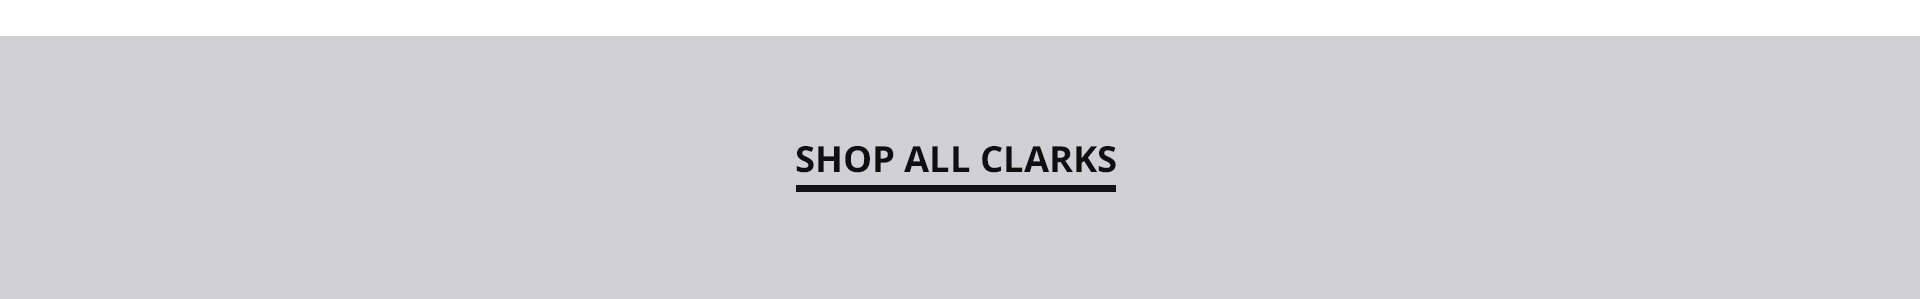 Shop All Clarks